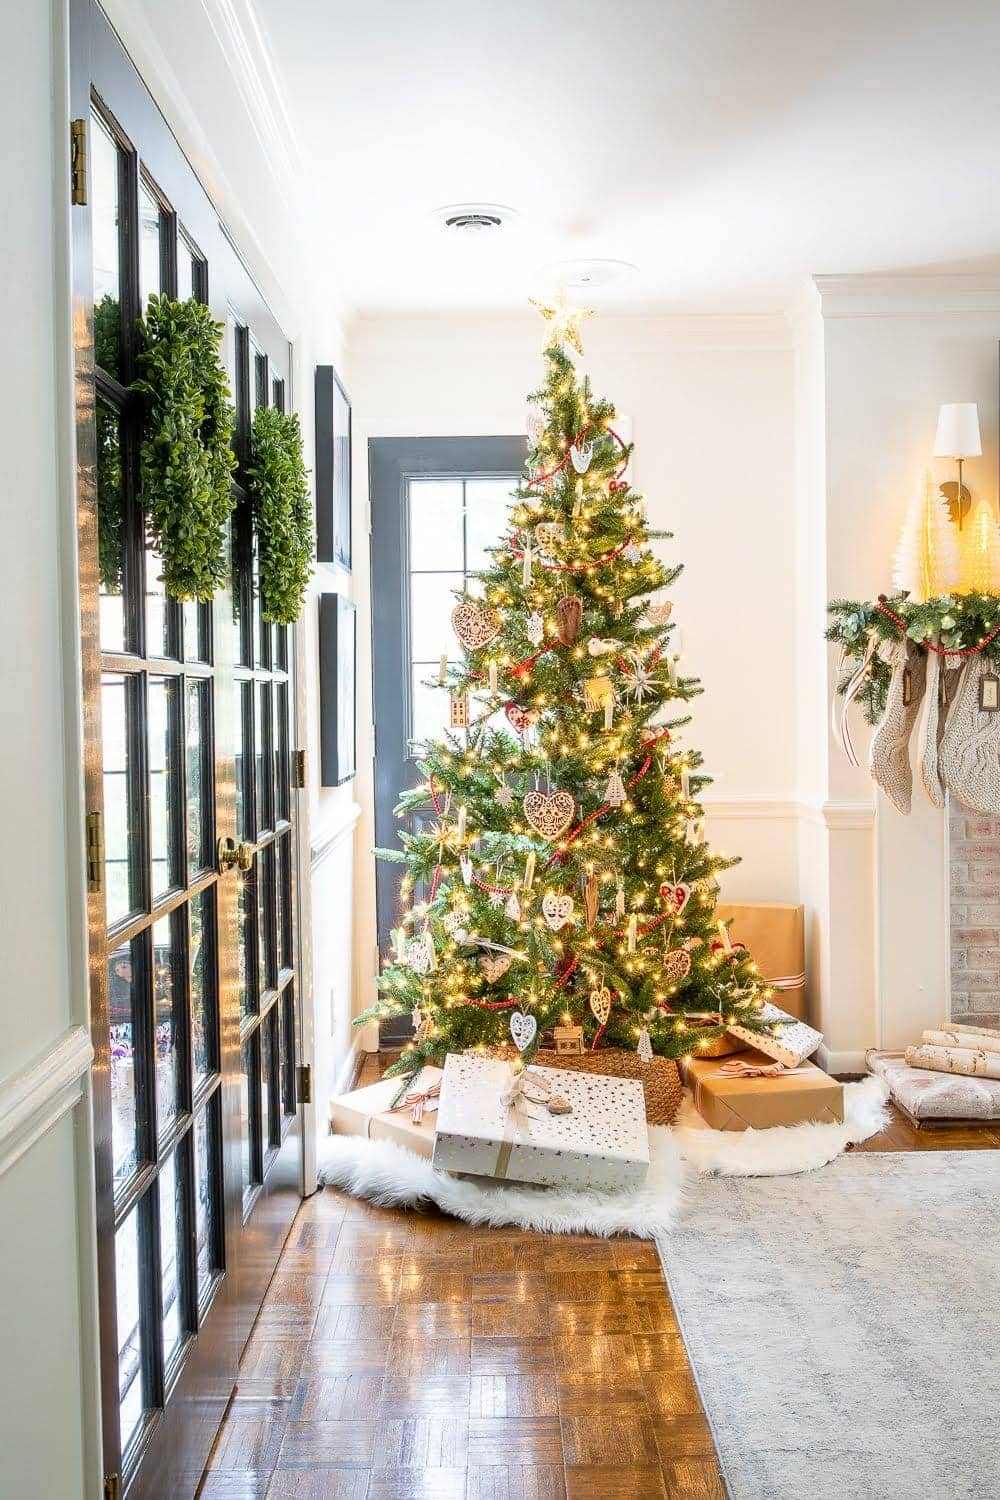 Christmas decor ideas | Swedish Christmas tree and French doors